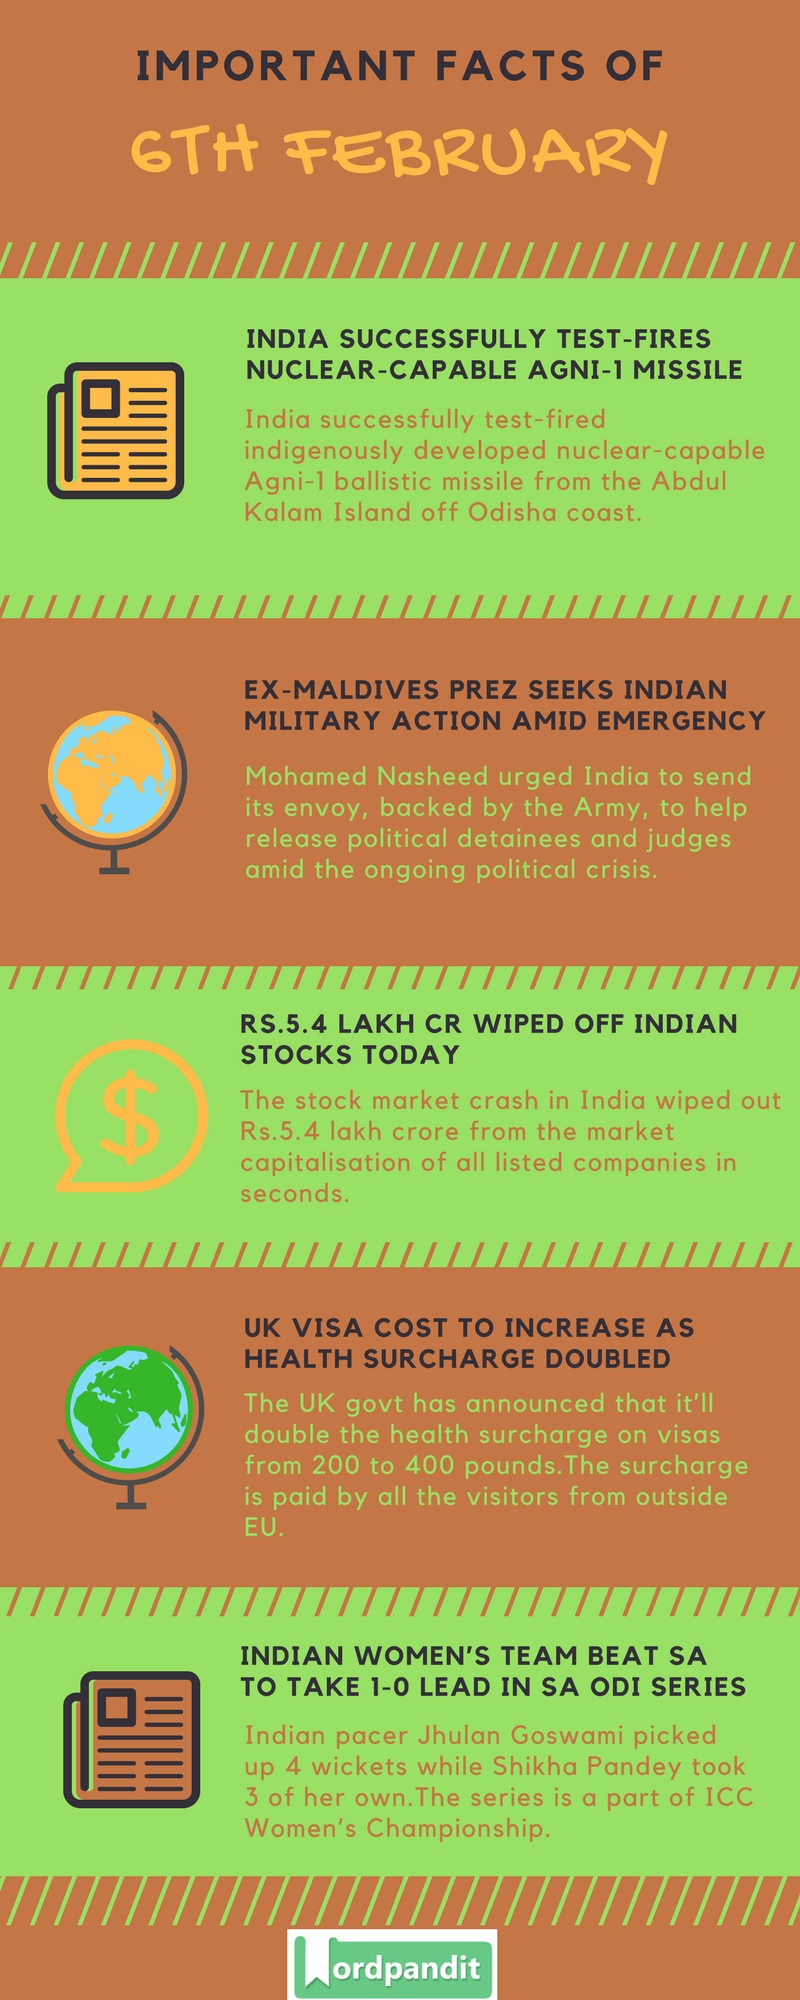 Daily Current Affairs 6 February 2018 Current Affairs Quiz February 6 2018 Current Affairs Infographic